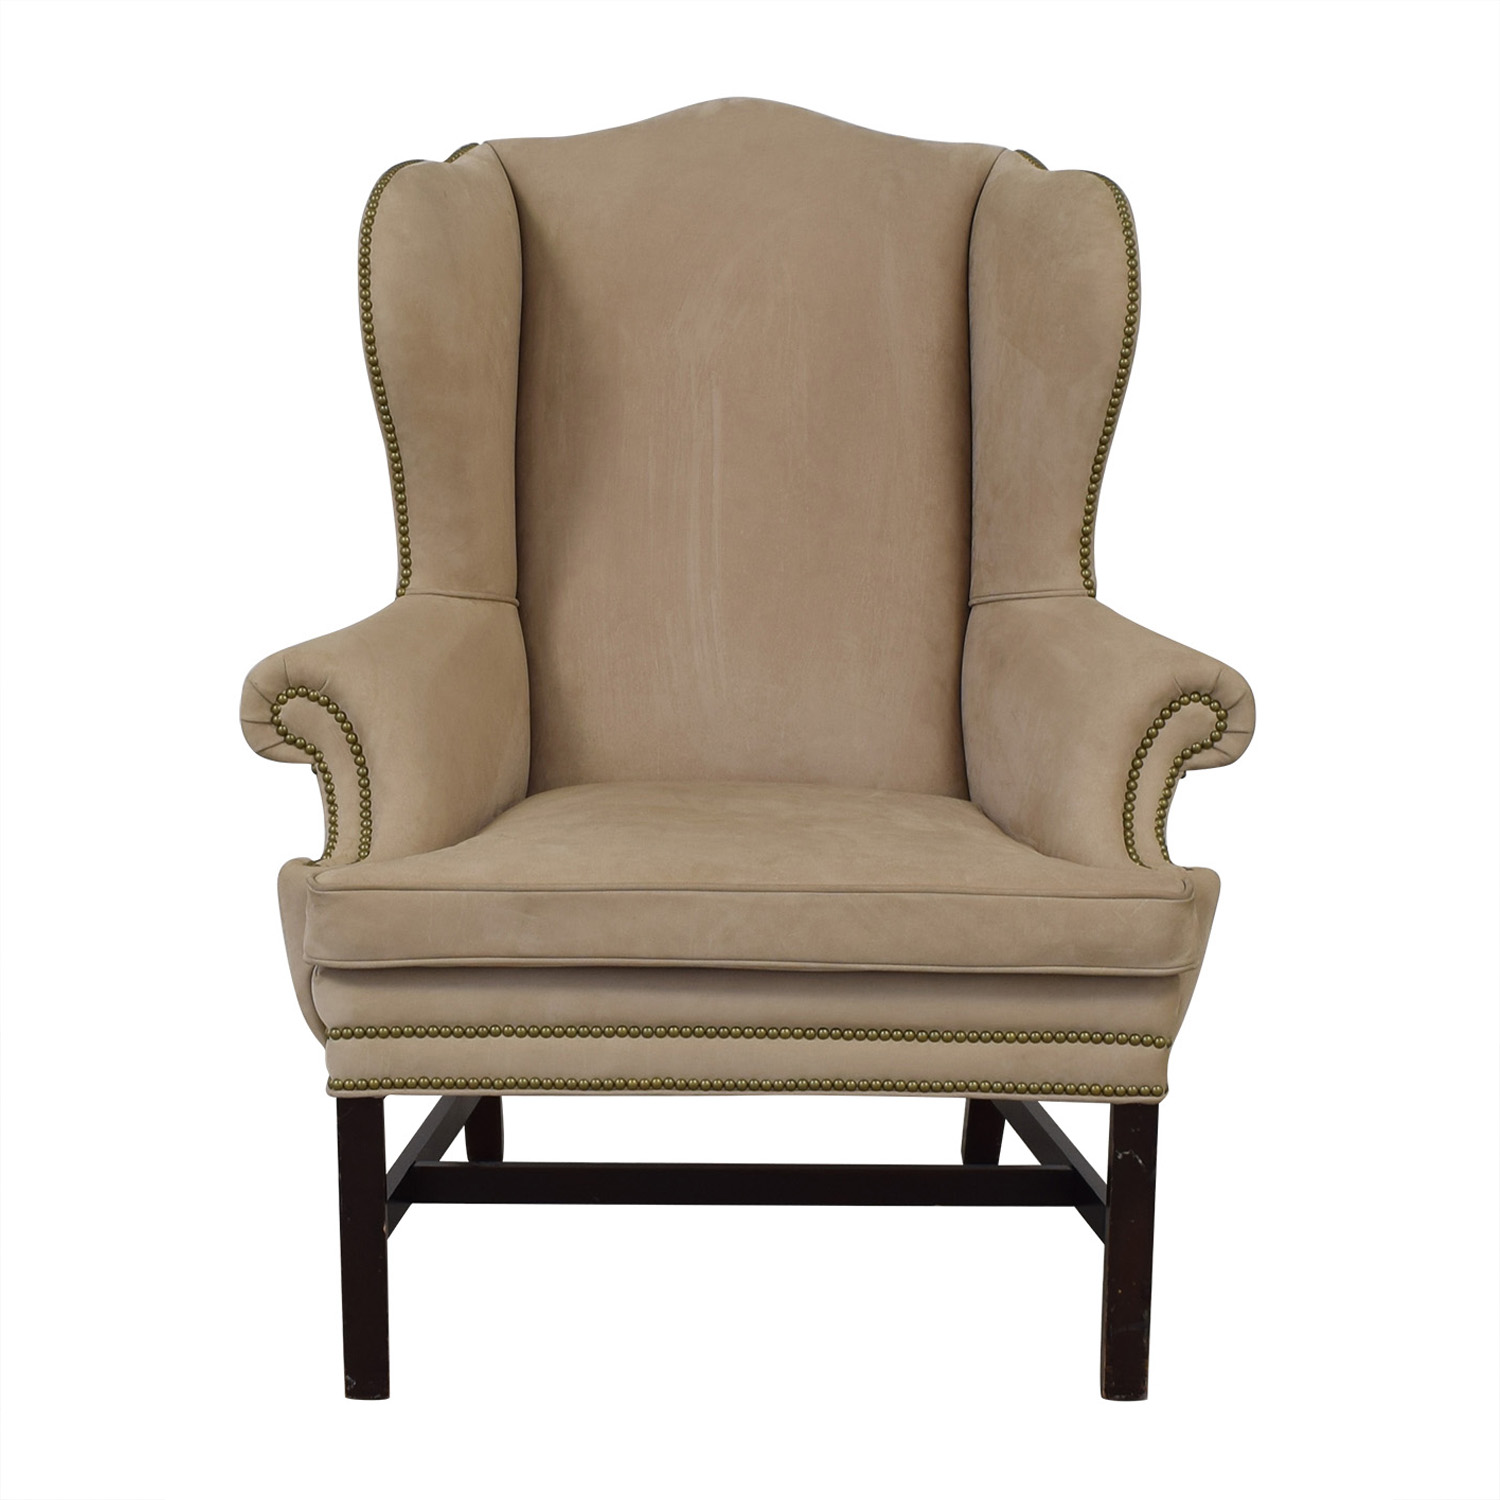 buy Ralph Lauren Home Beige Nailhead Wingback Chair Ralph Lauren Home Chairs